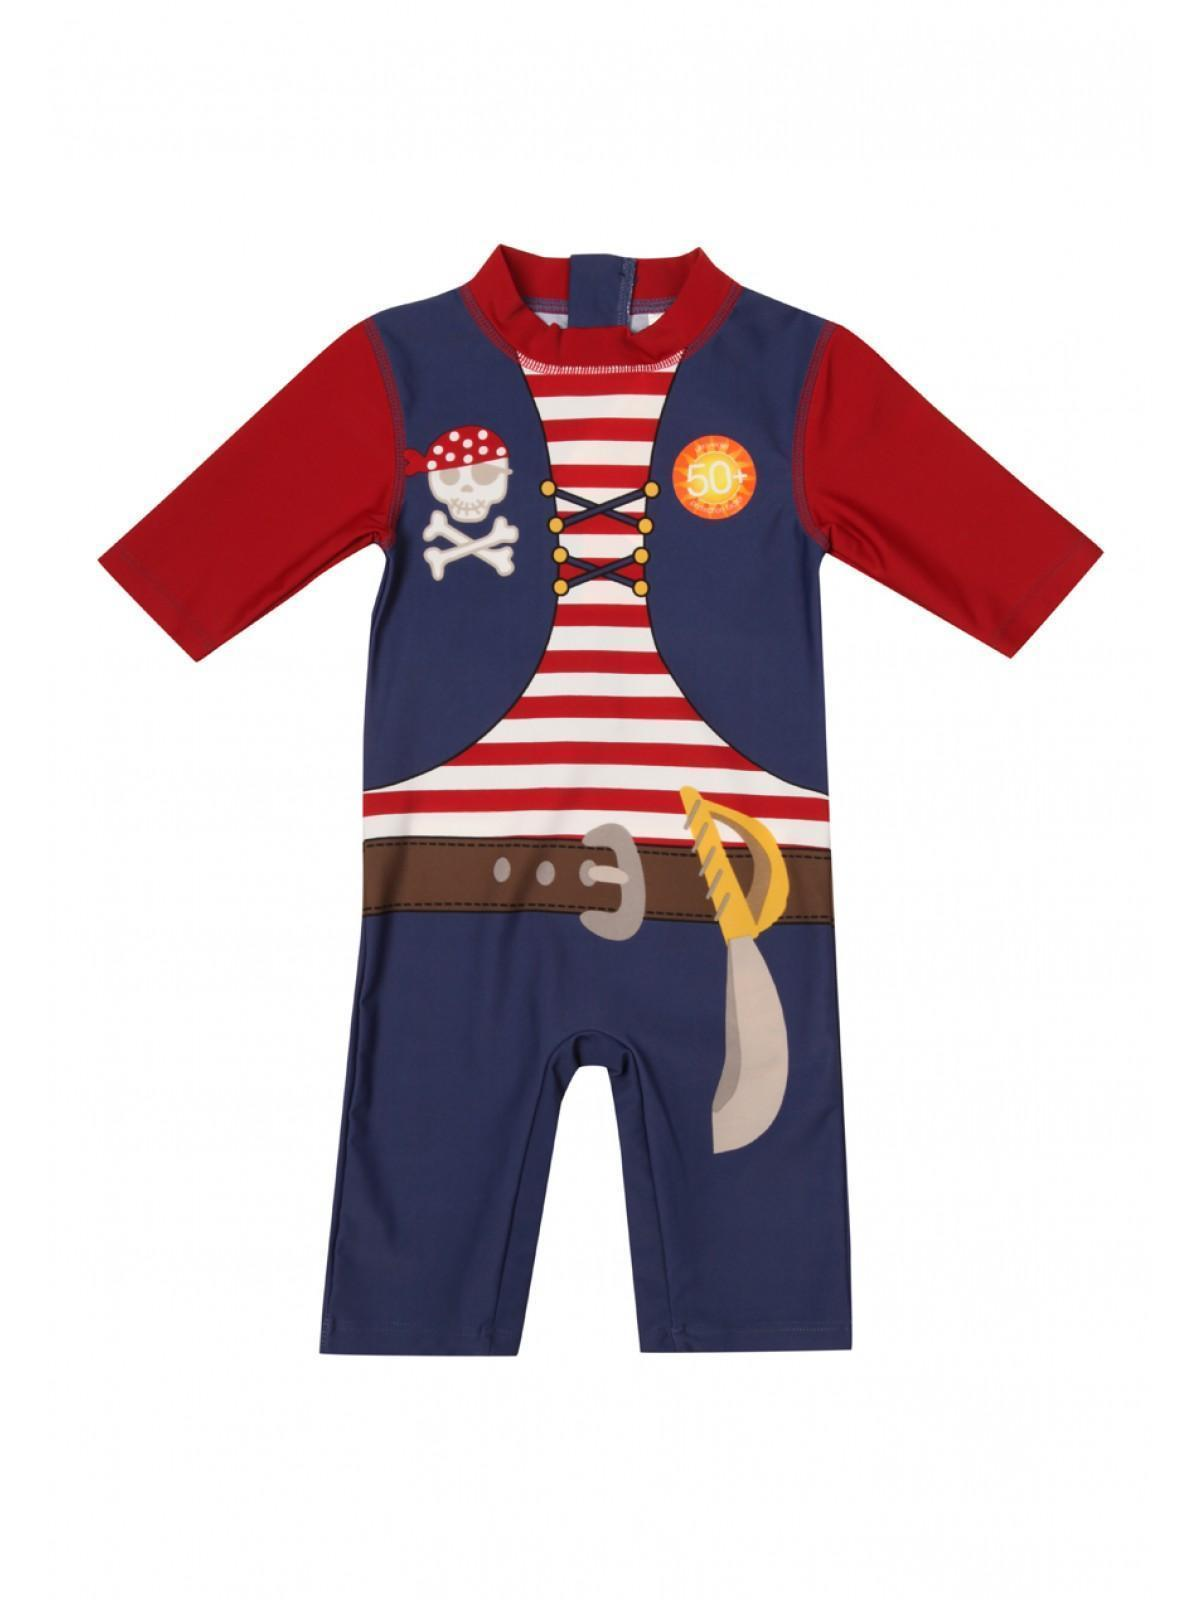 6bd4756fb5 Home; Baby Boys Pirate Swim Suit. Back. PreviousNext